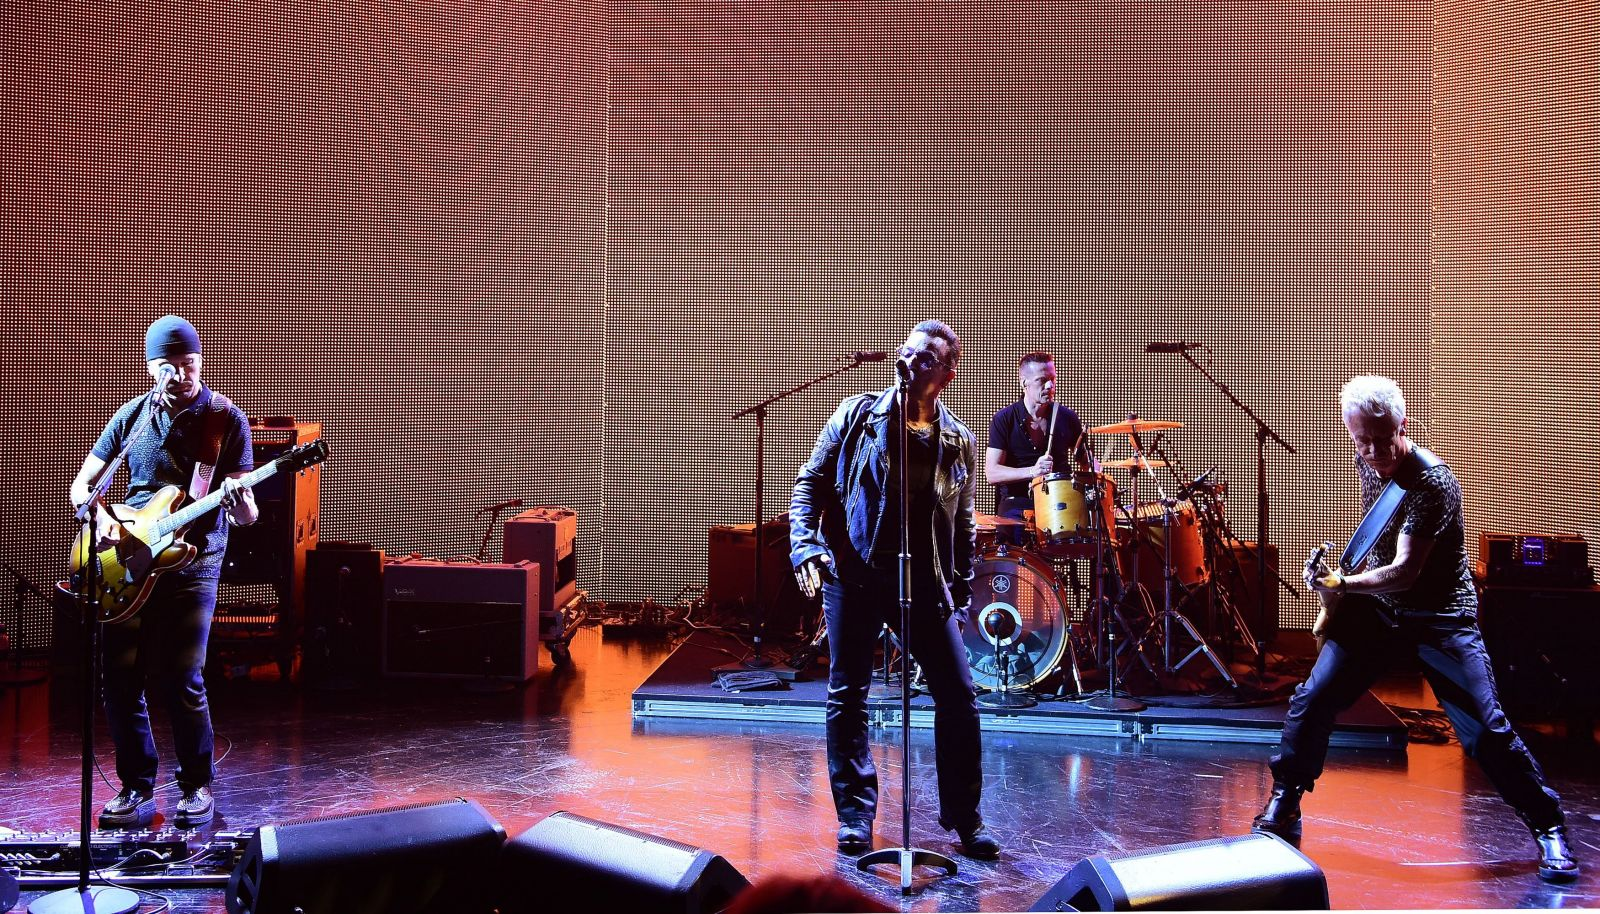 U2 Graham Norton Show October 2014